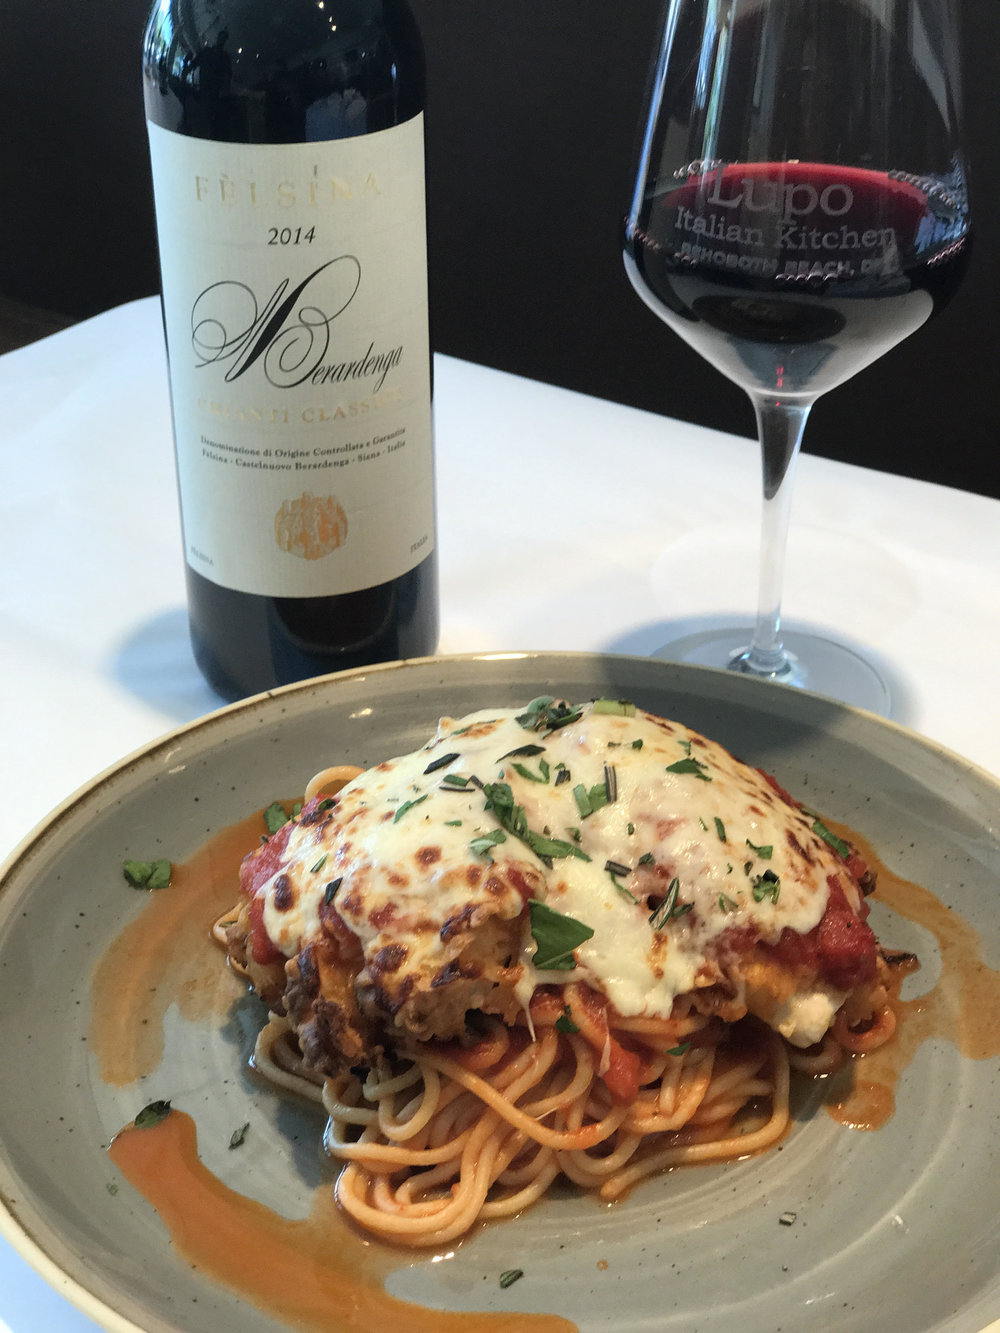 014 Felsina Chianti Classico 'Riserva' with Chicken Parmesan at Lupo Italian Kitchen